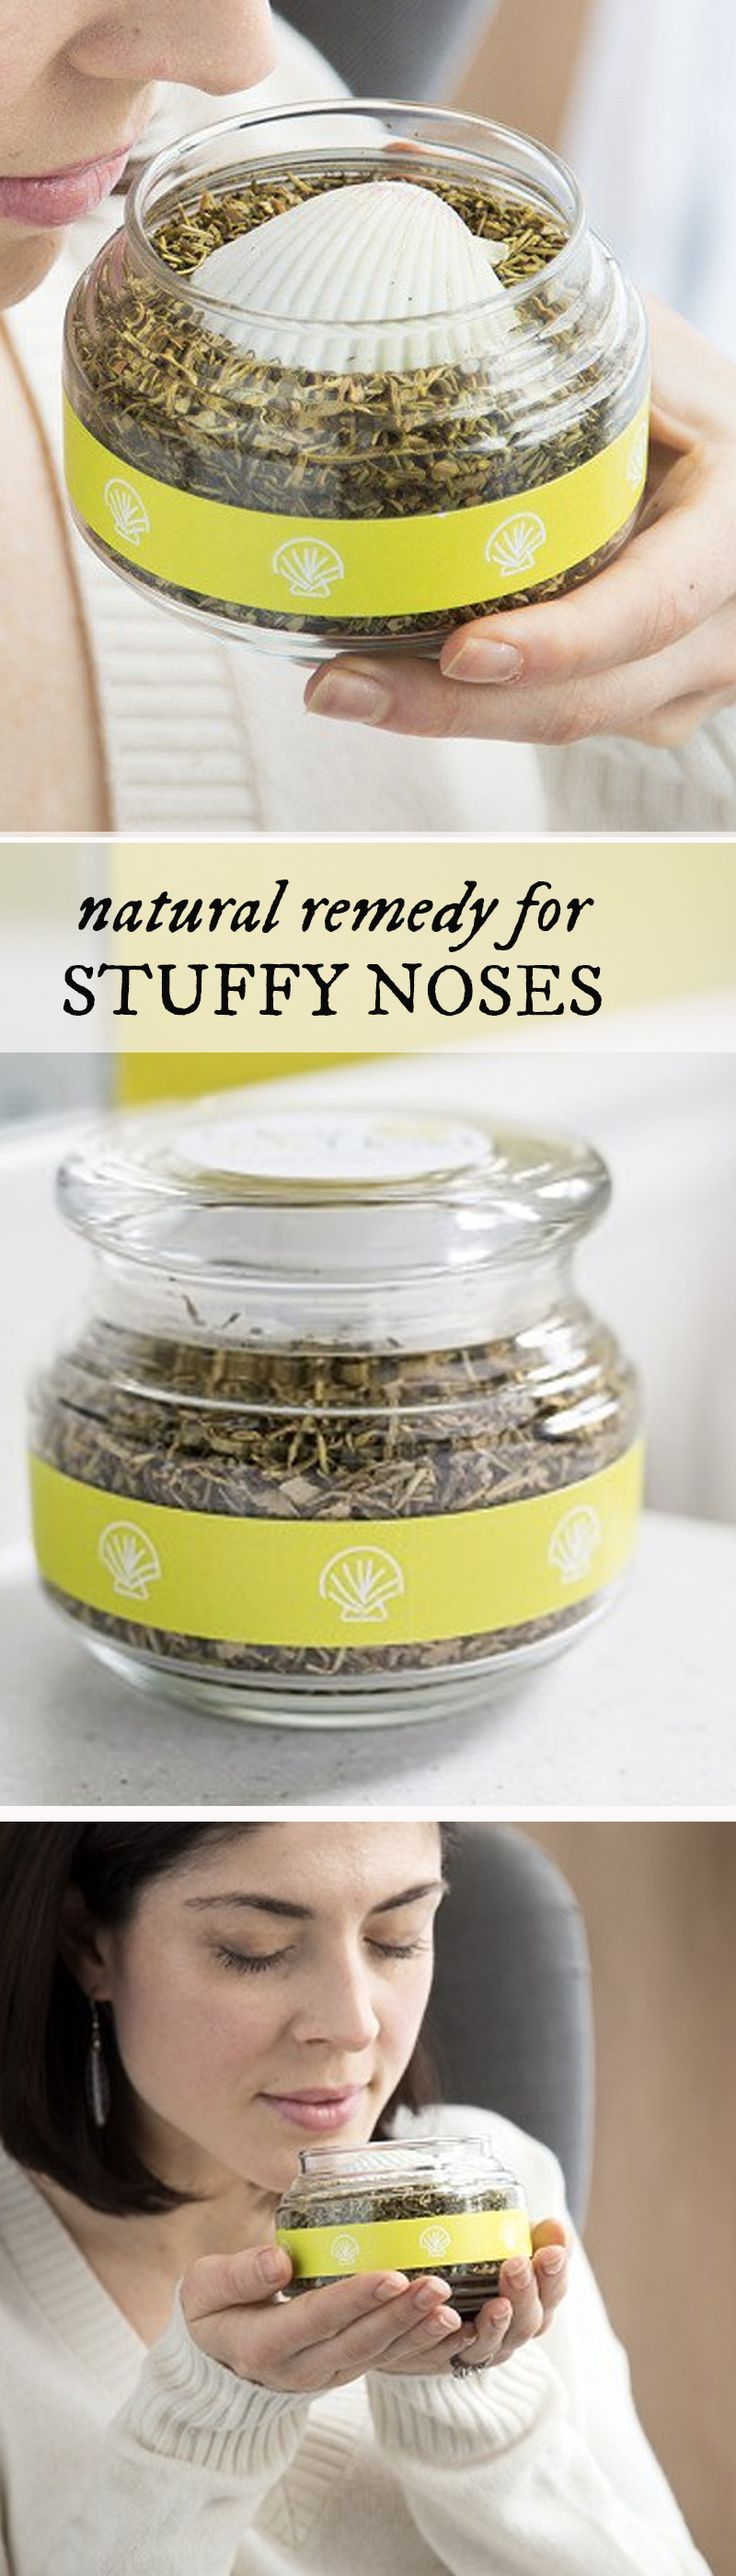 Stuffy? Sniff this. It's a natural remedy for stuffy noses. It can relieve sinus pressure and even headaches—breathe from the jar of seven herbs and essential oils, or mix into hot water for a steam treatment.